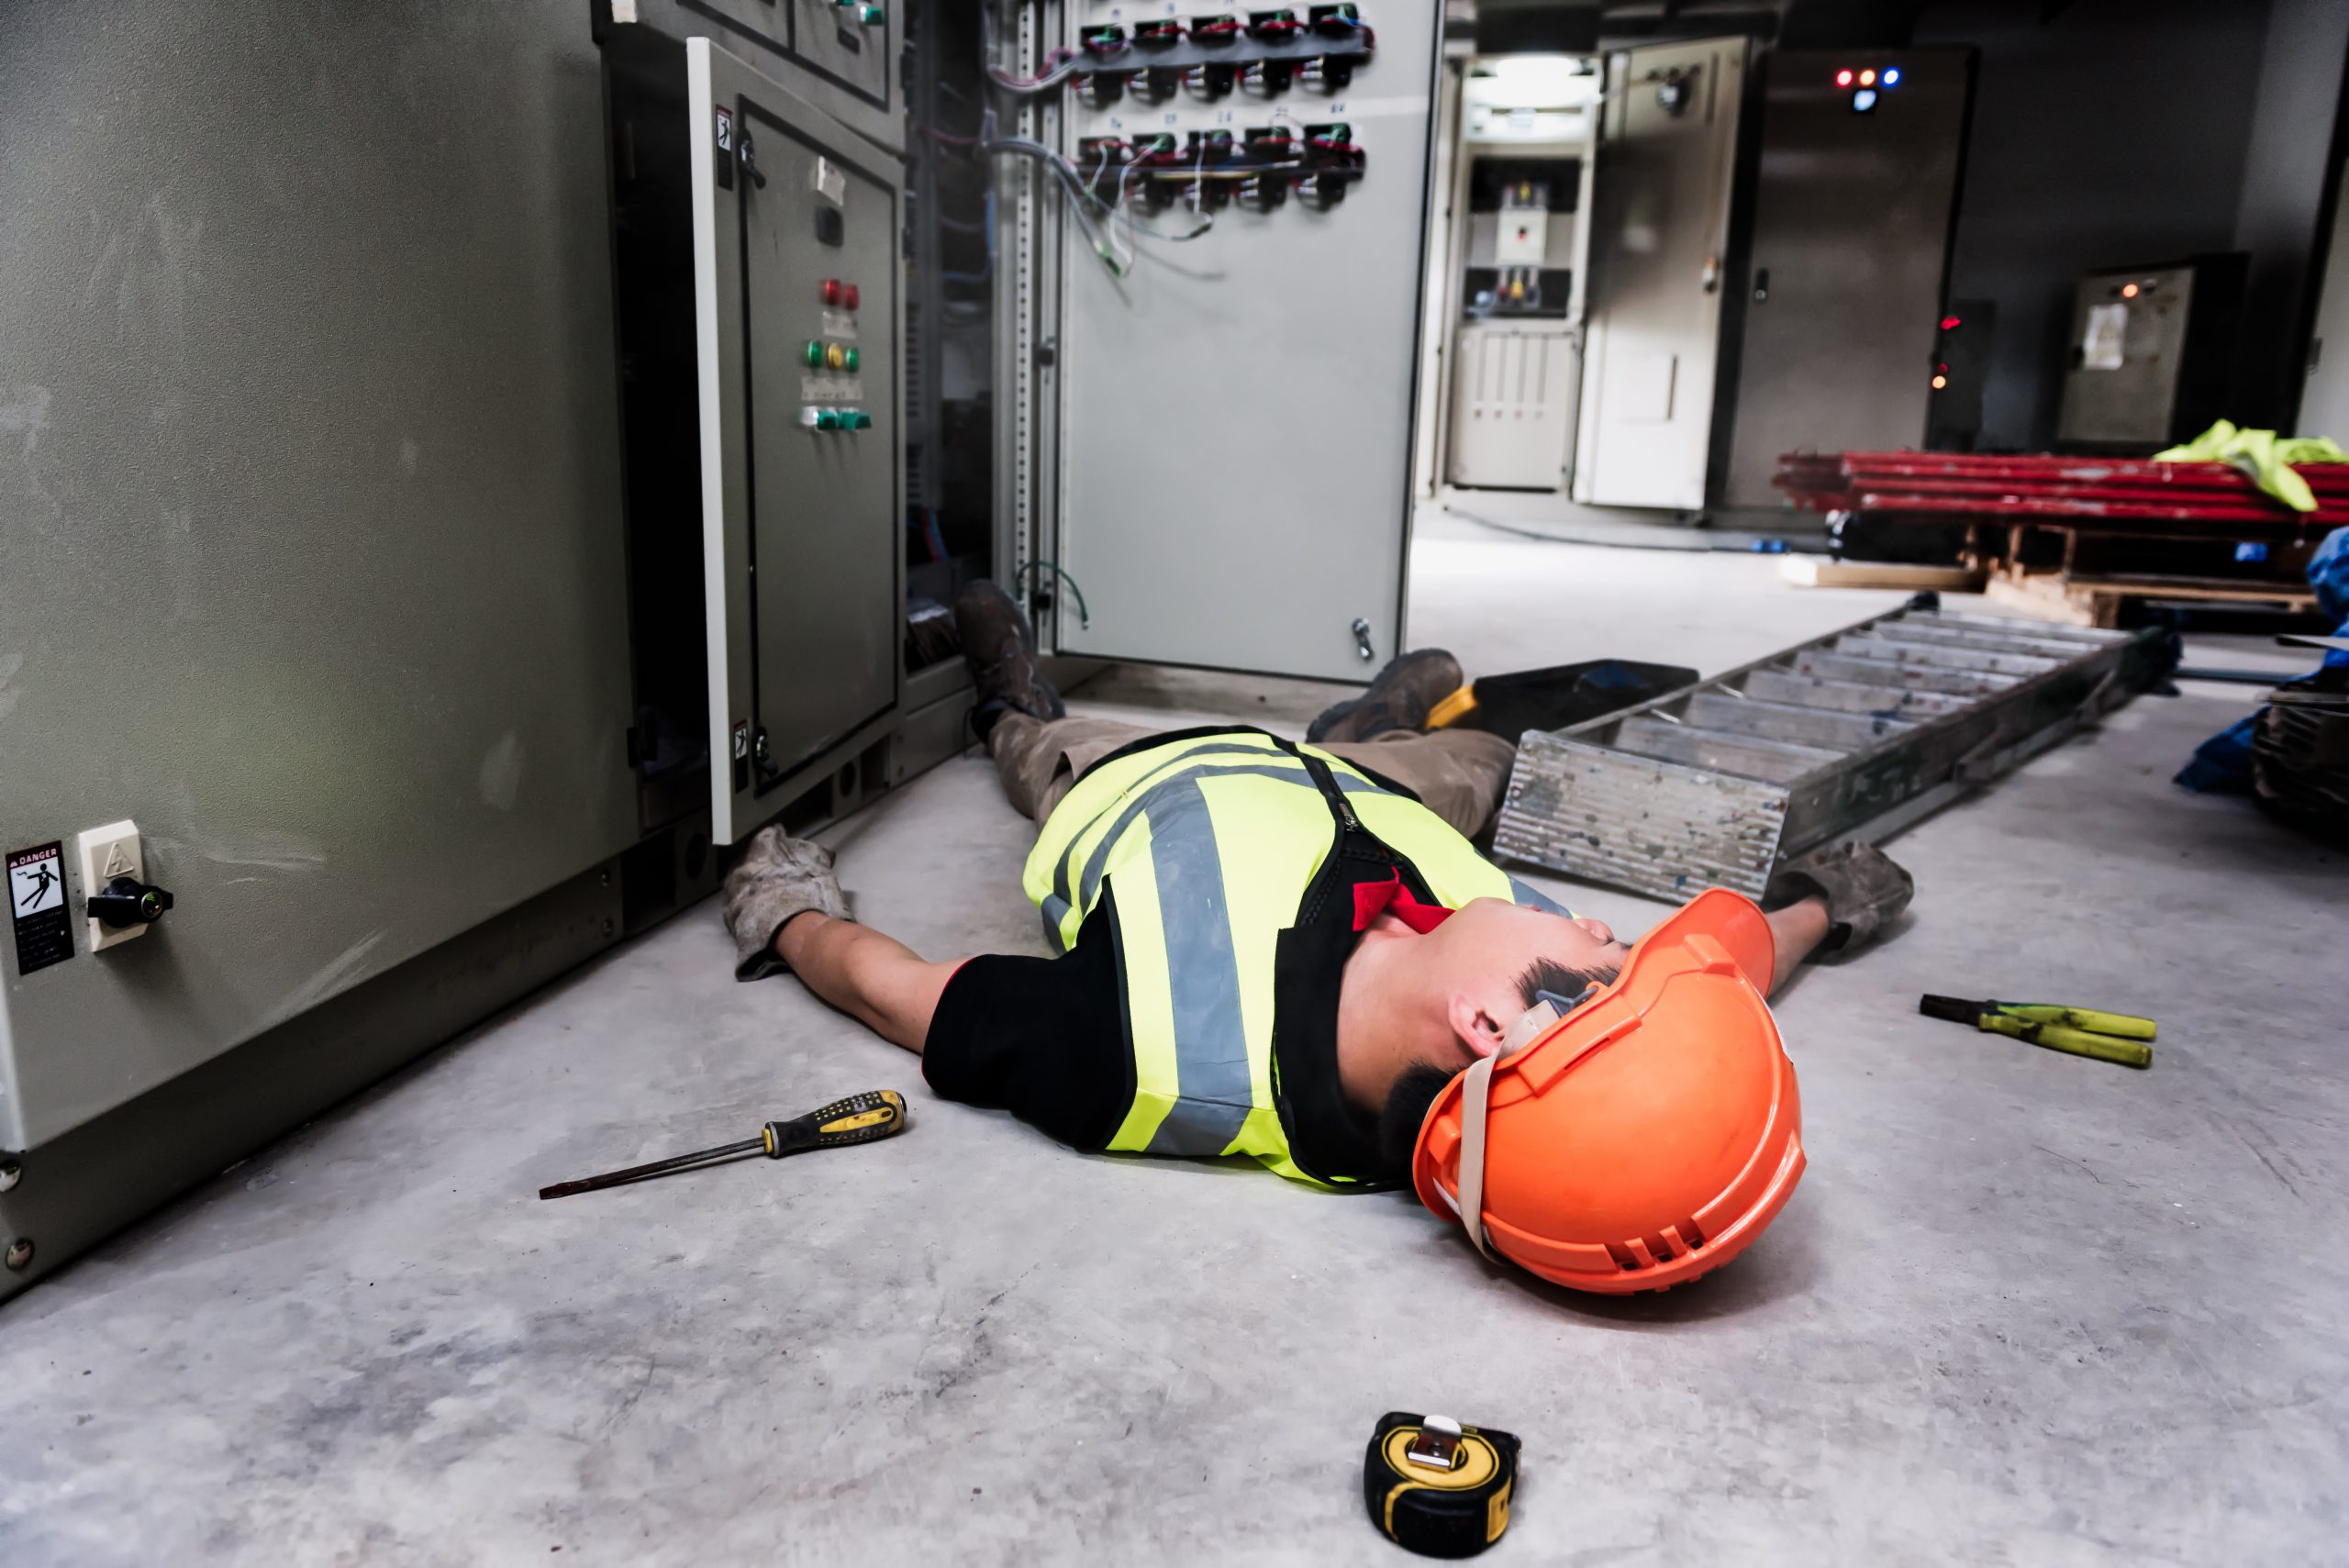 a construction worker lies on the floor